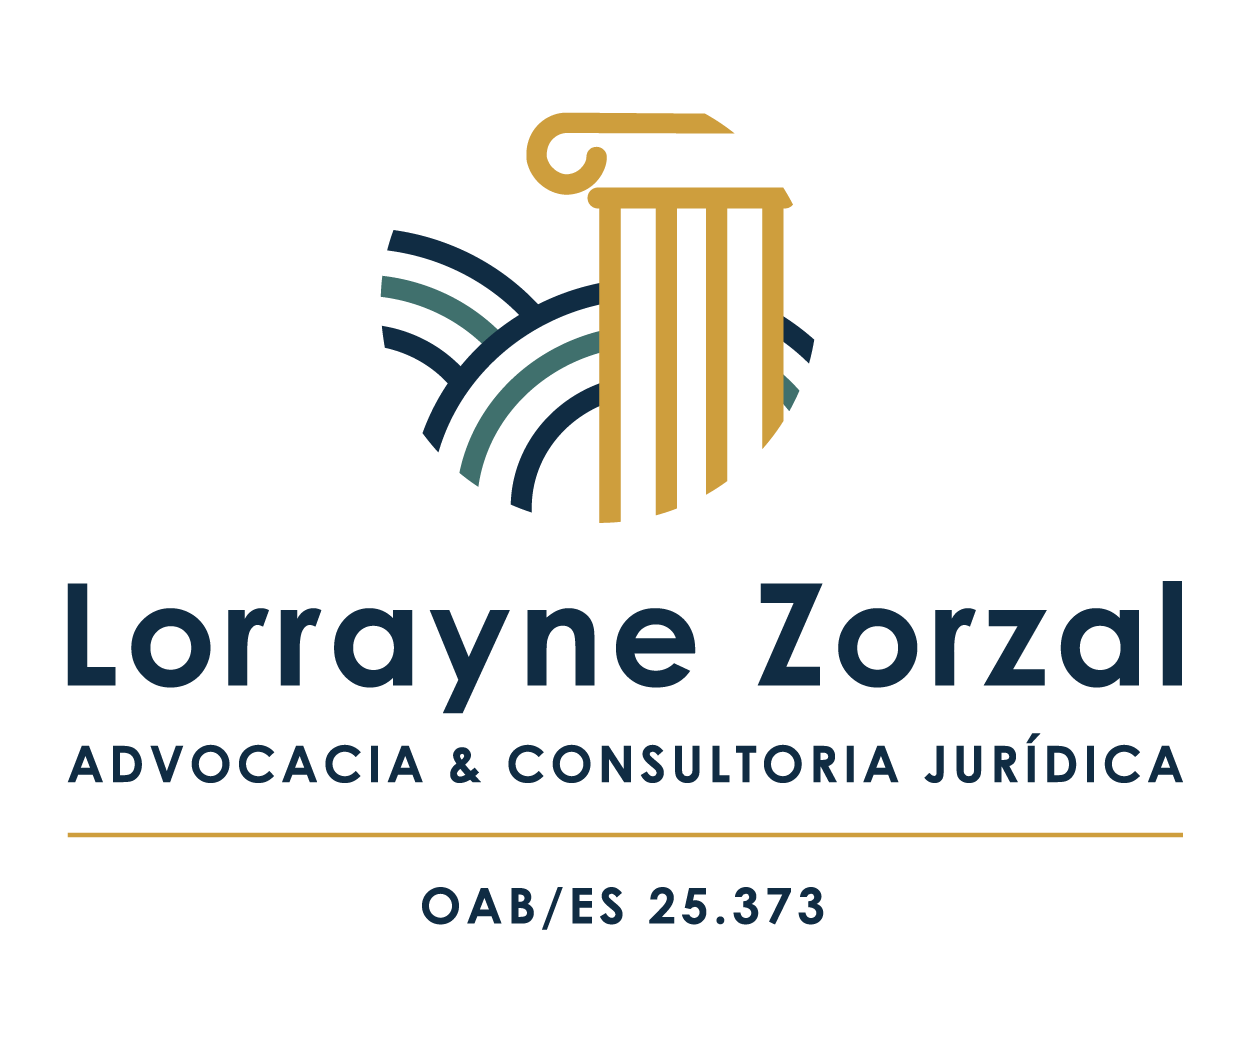 Lorrayne_logotipo_2020_colorida_fundo transparente_vertical